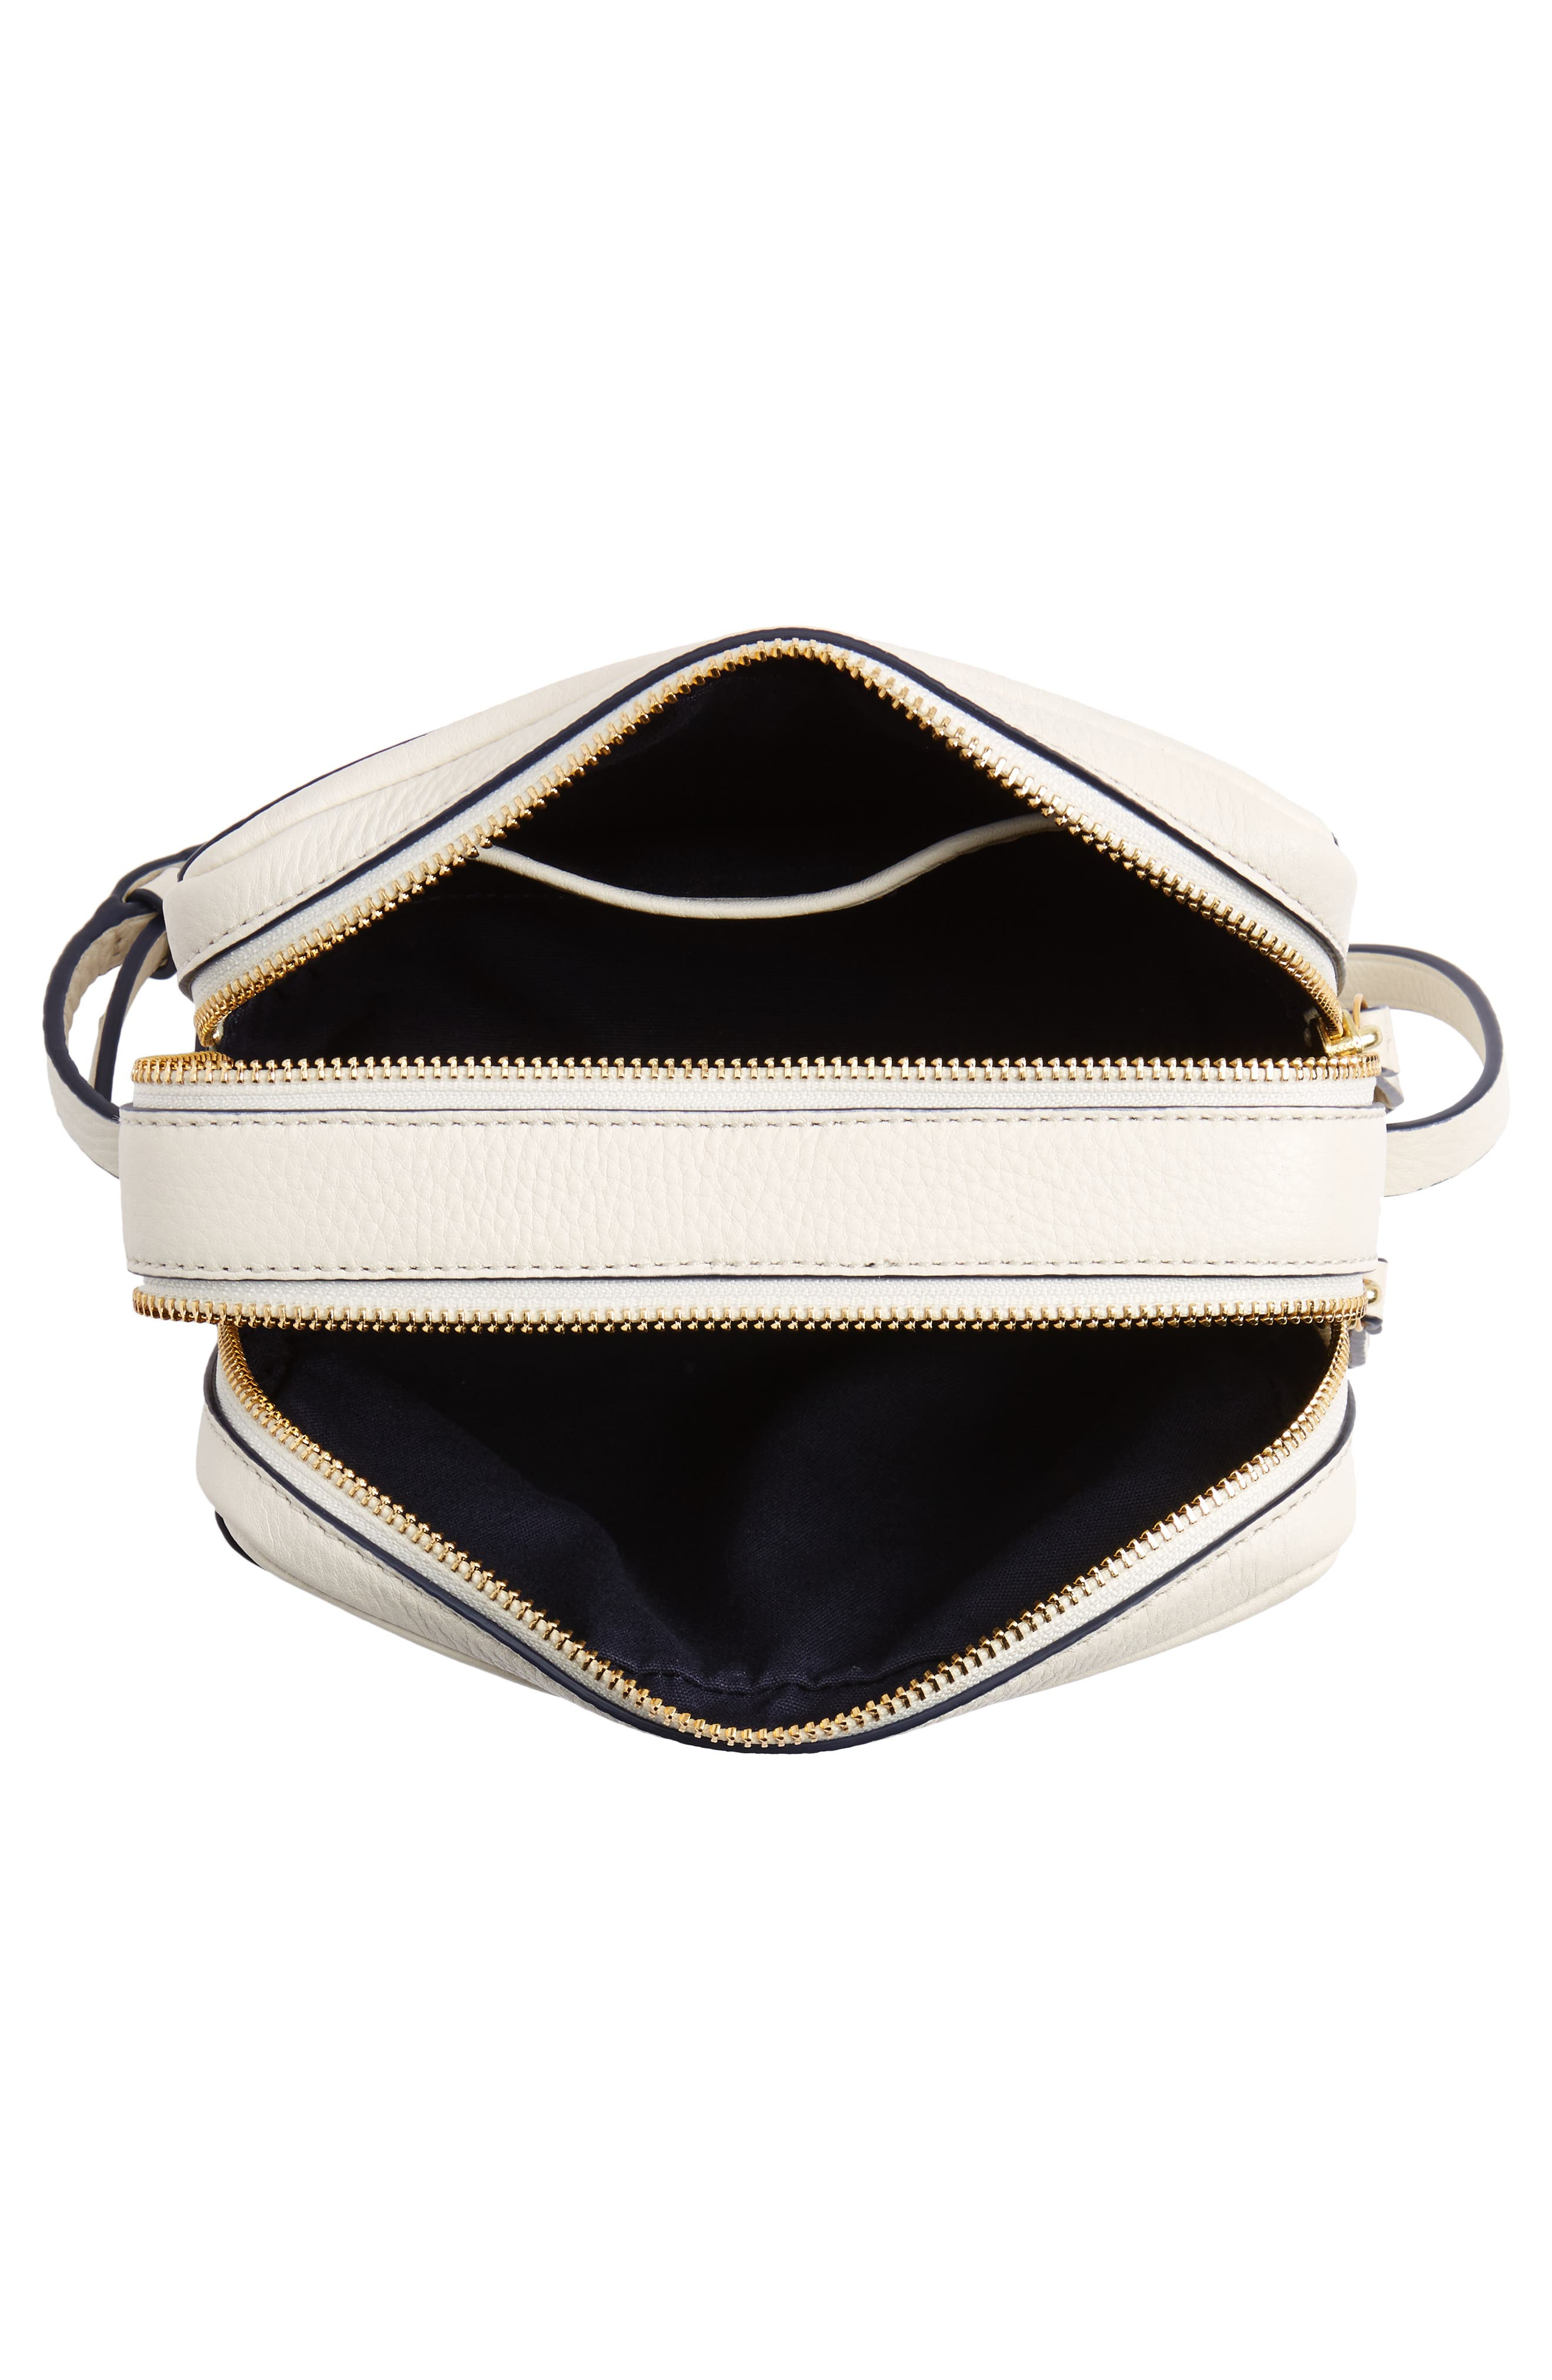 Block-T Double Zip Leather Crossbody Bag,                             Alternate thumbnail 4, color,                             New Ivory